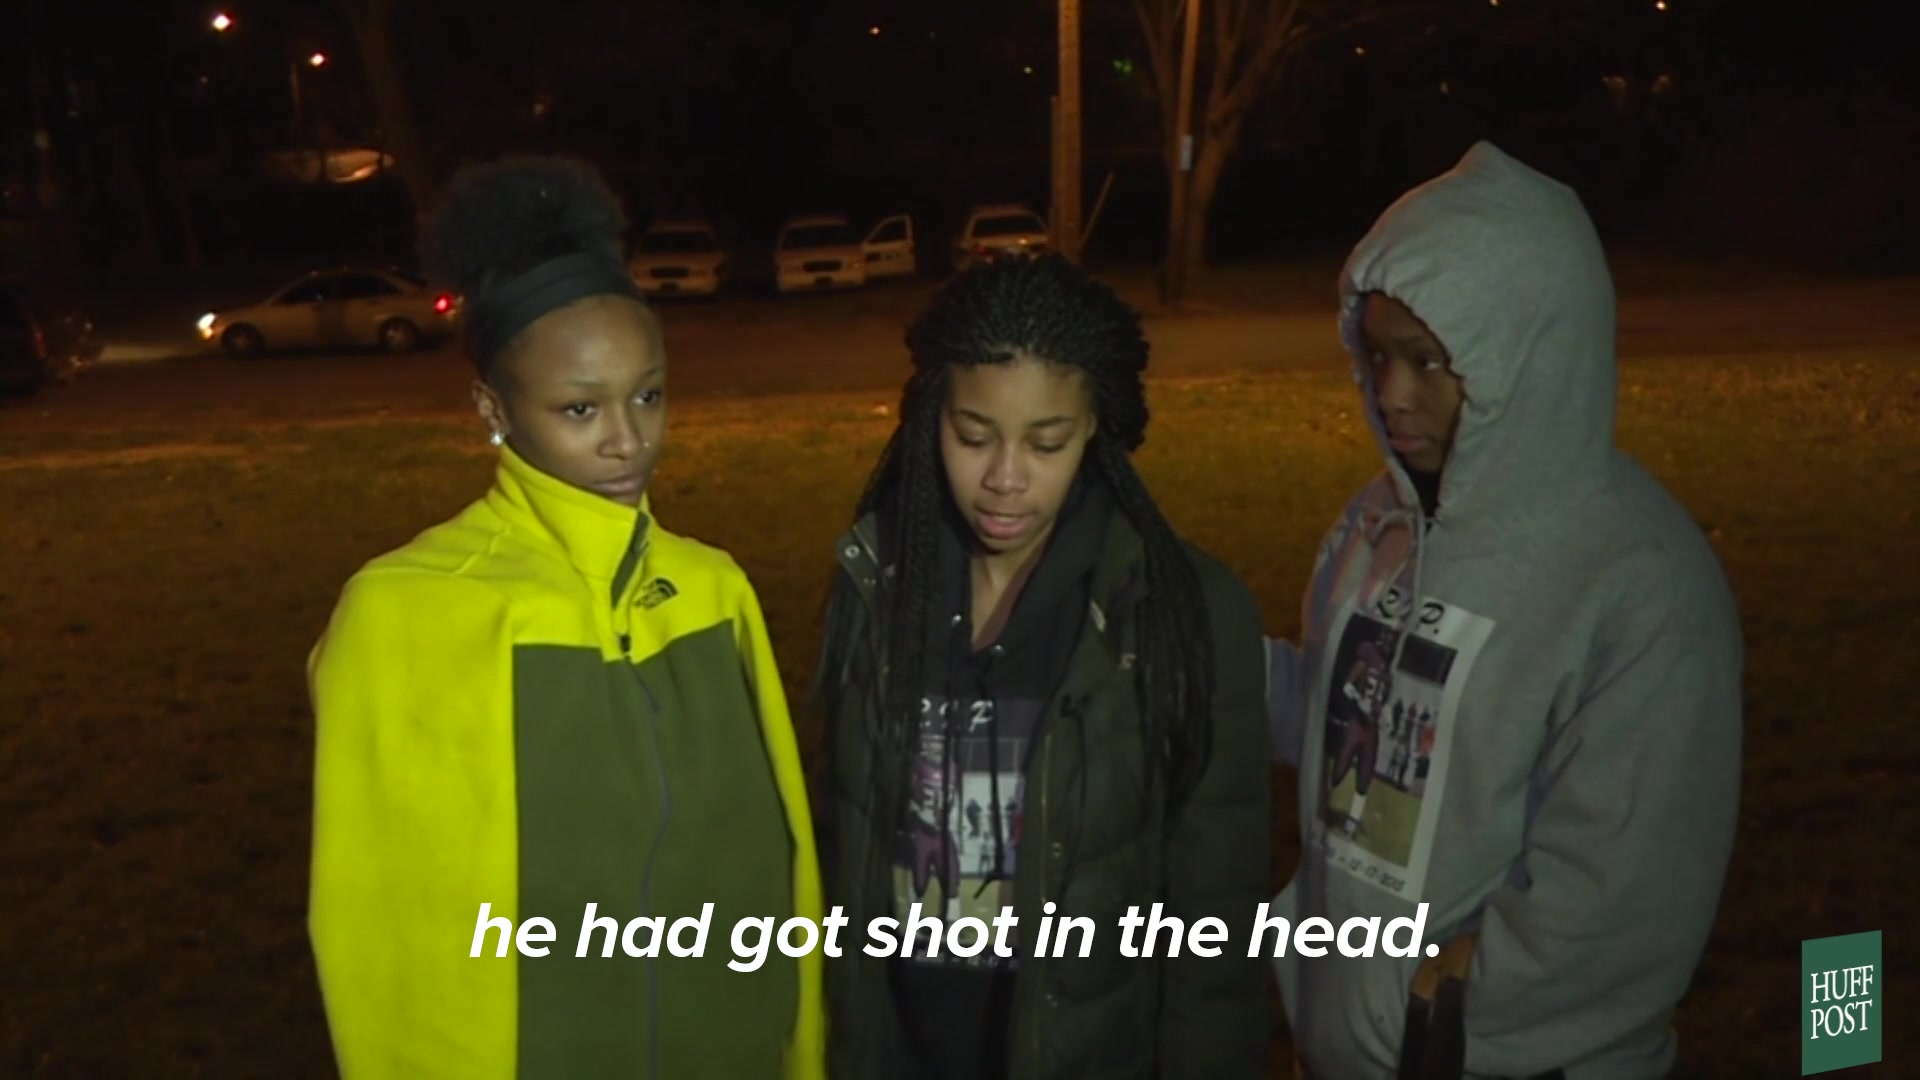 15-Year-Old Gives Life To Save Kids From Gang Shooting